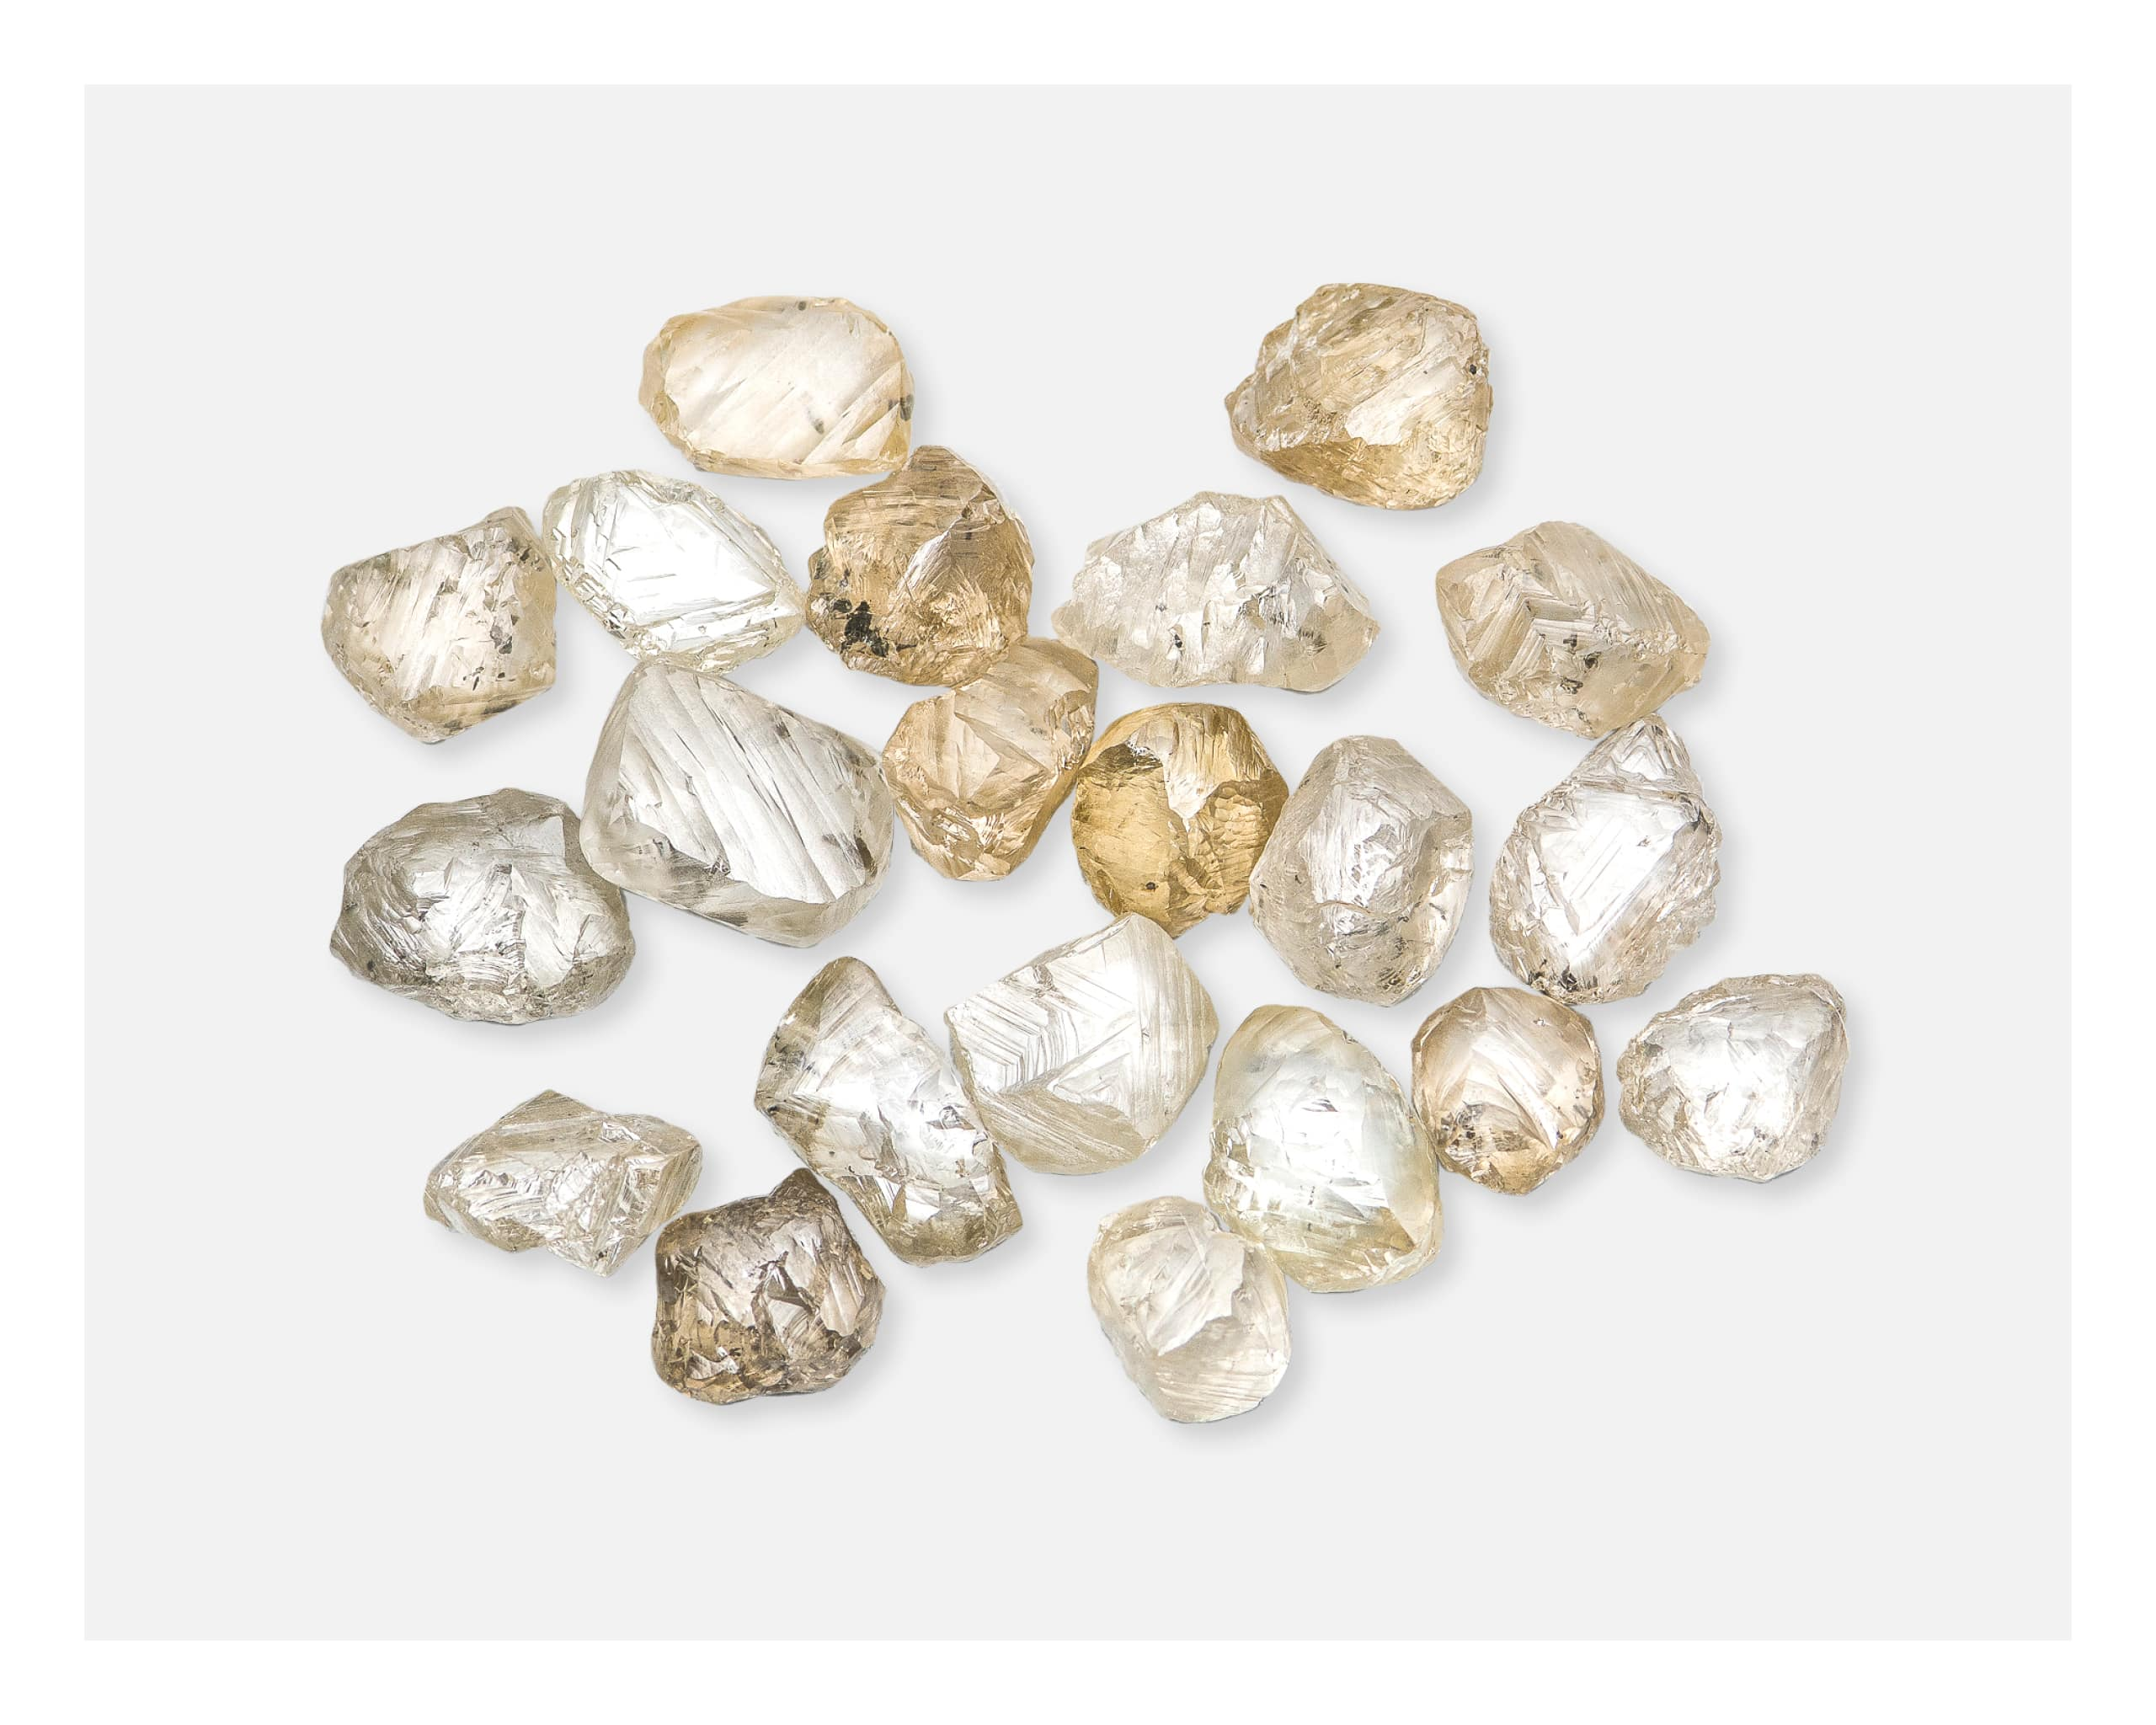 Assorted white diamonds, brown diamonds & brow yellow diamonds selected by Annu Hu for the ALROSA diamond auction